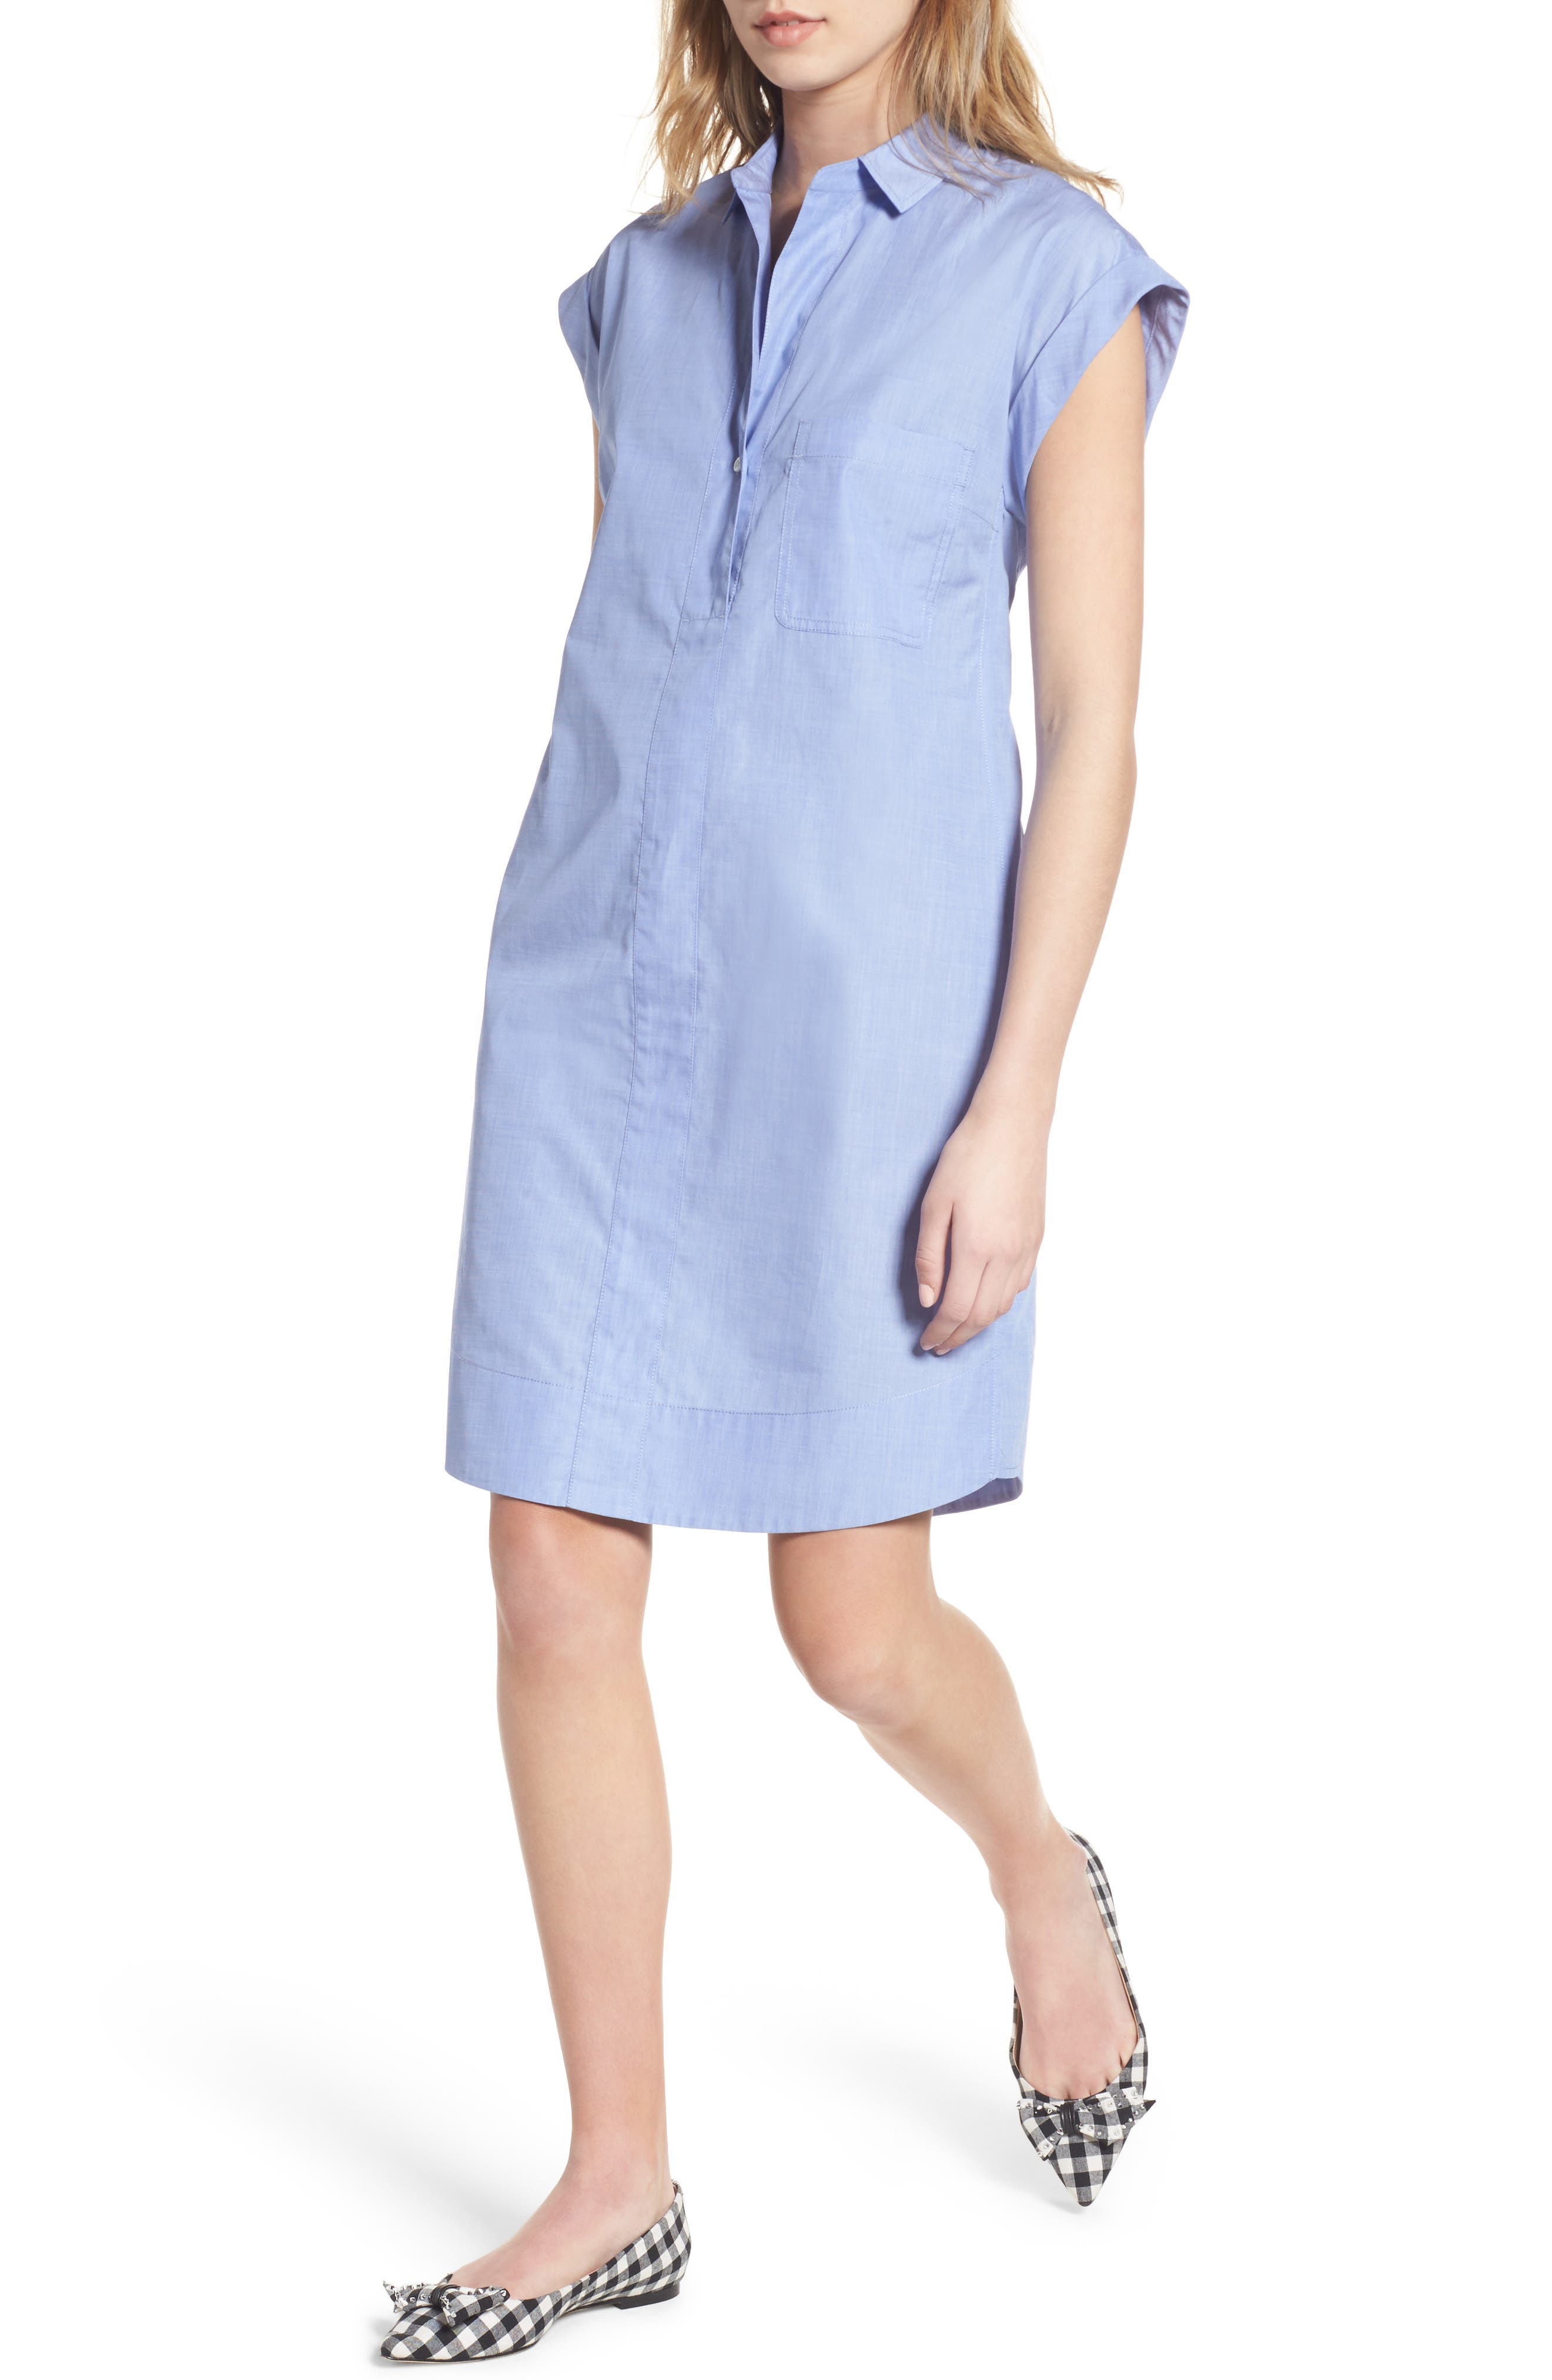 J.Crew Cotton Shirtdress (Regular & Petite)